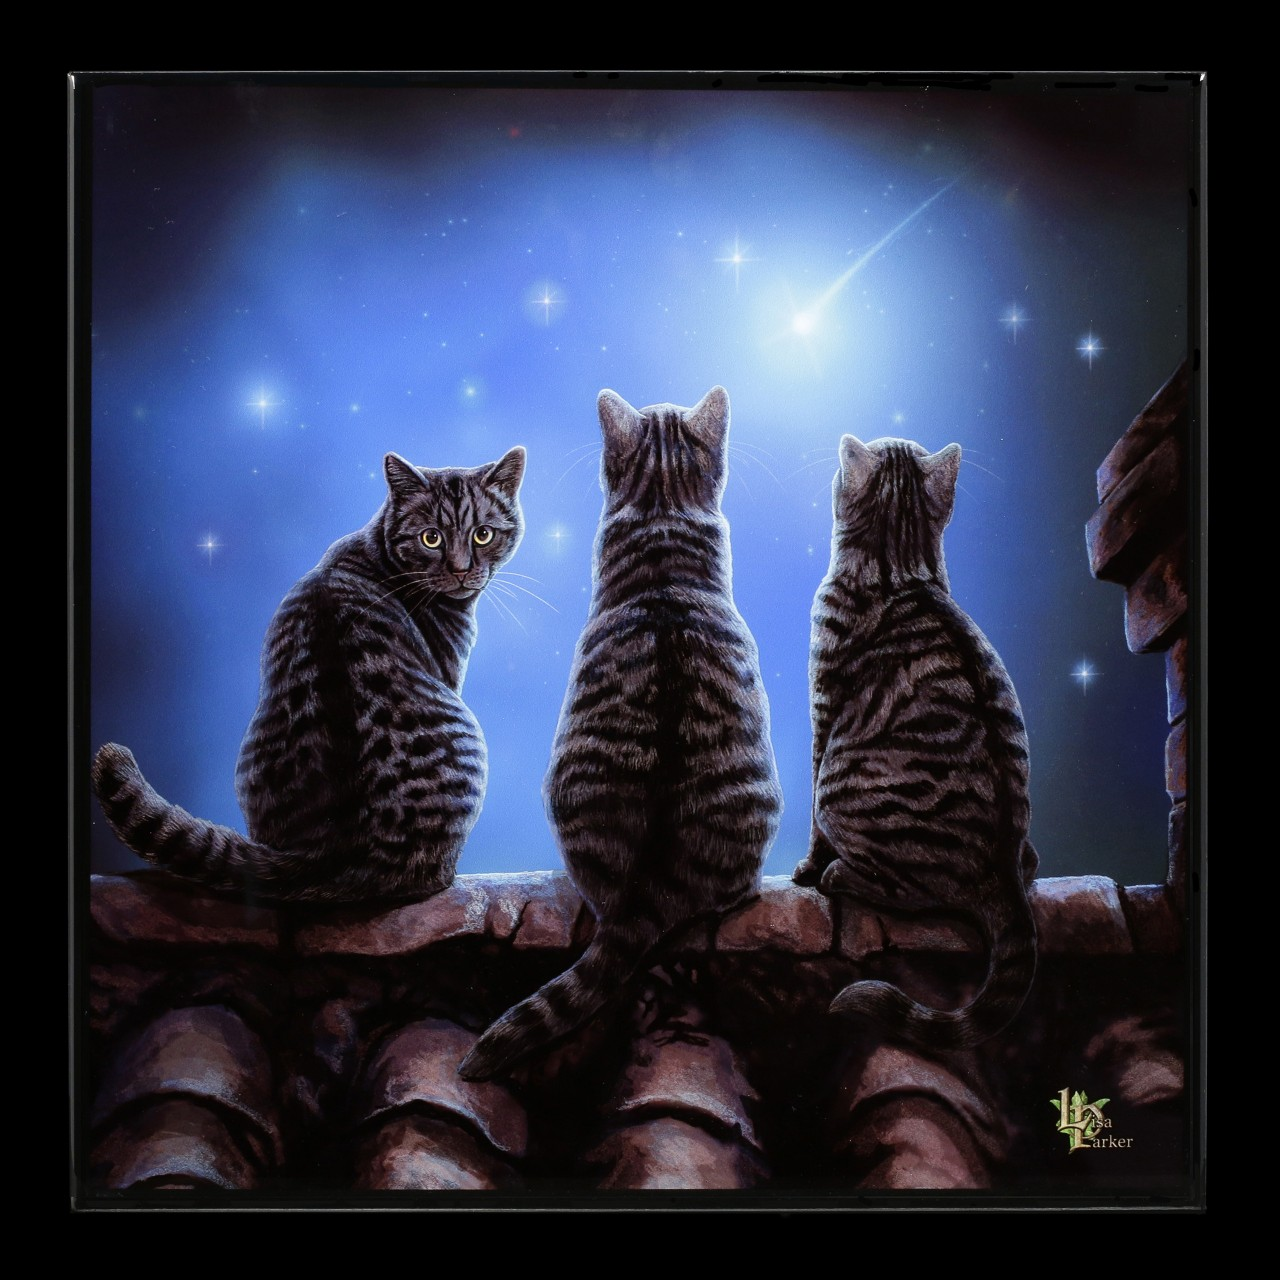 Small Crystal Clear Picture with Cats - Wish Upon a Star